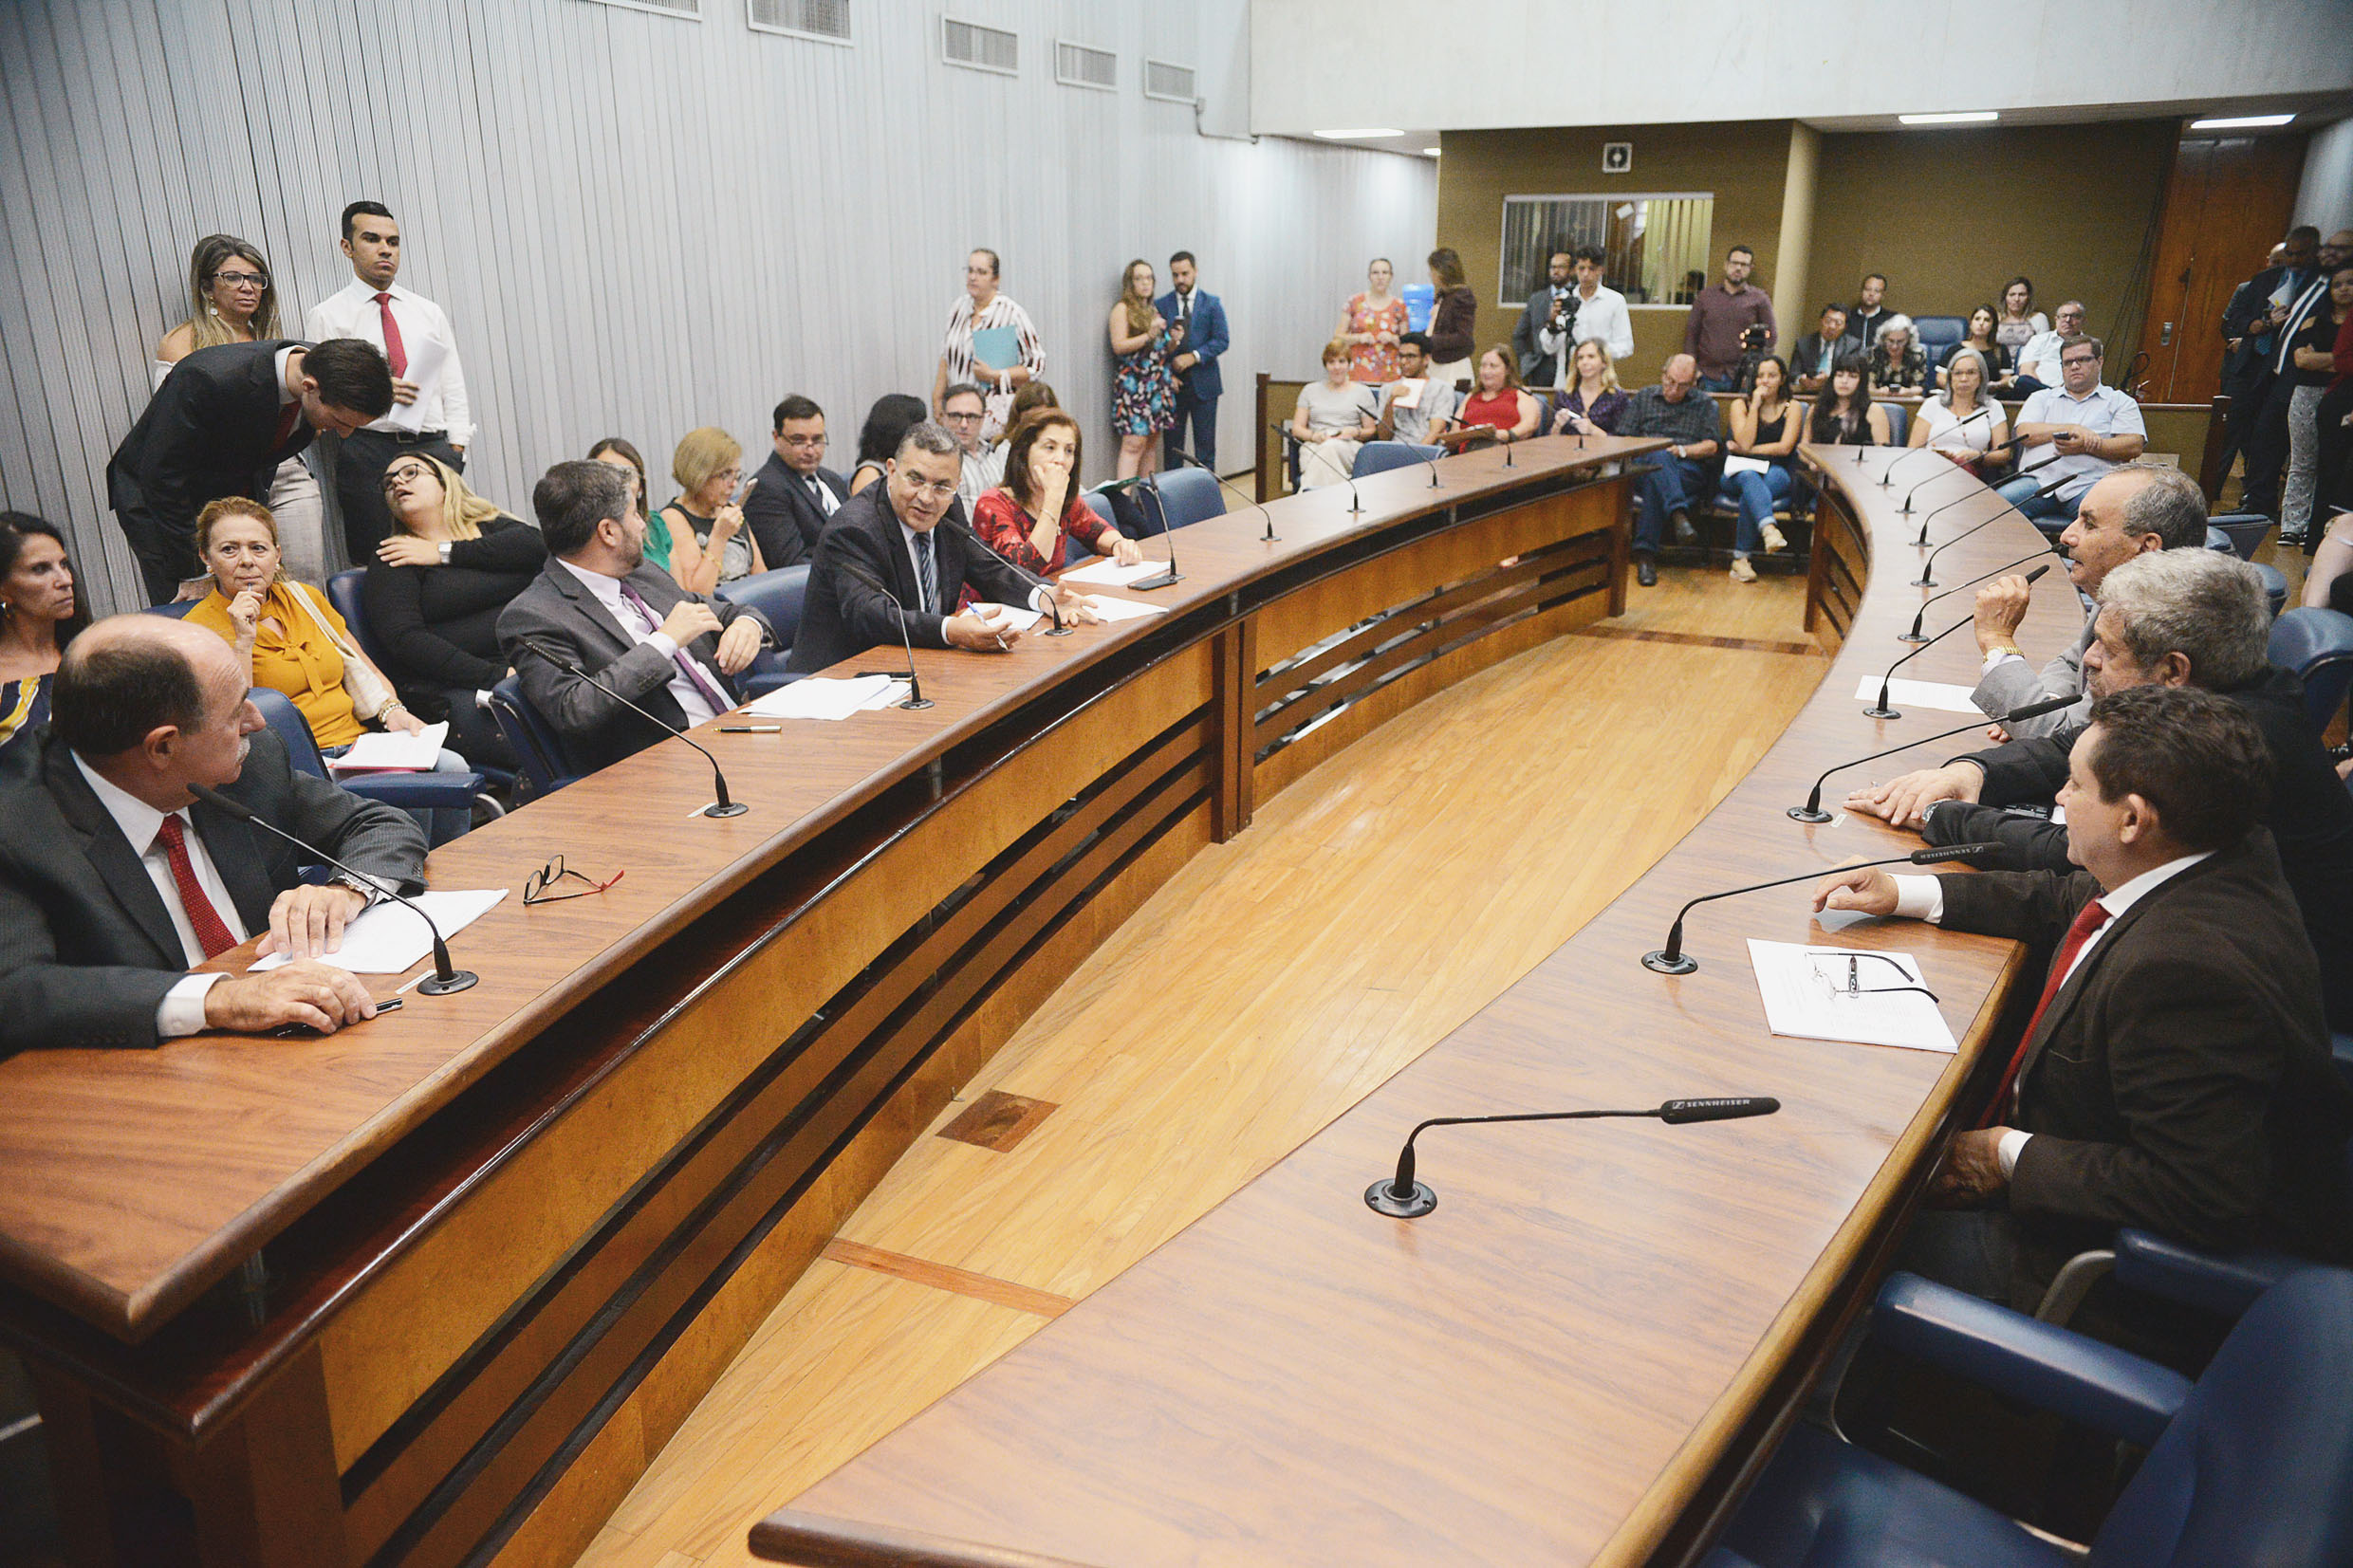 Parlamentares na comissão <a style='float:right' href='https://www3.al.sp.gov.br/repositorio/noticia/N-03-2019/fg231082.jpg' target=_blank><img src='/_img/material-file-download-white.png' width='14px' alt='Clique para baixar a imagem'></a>